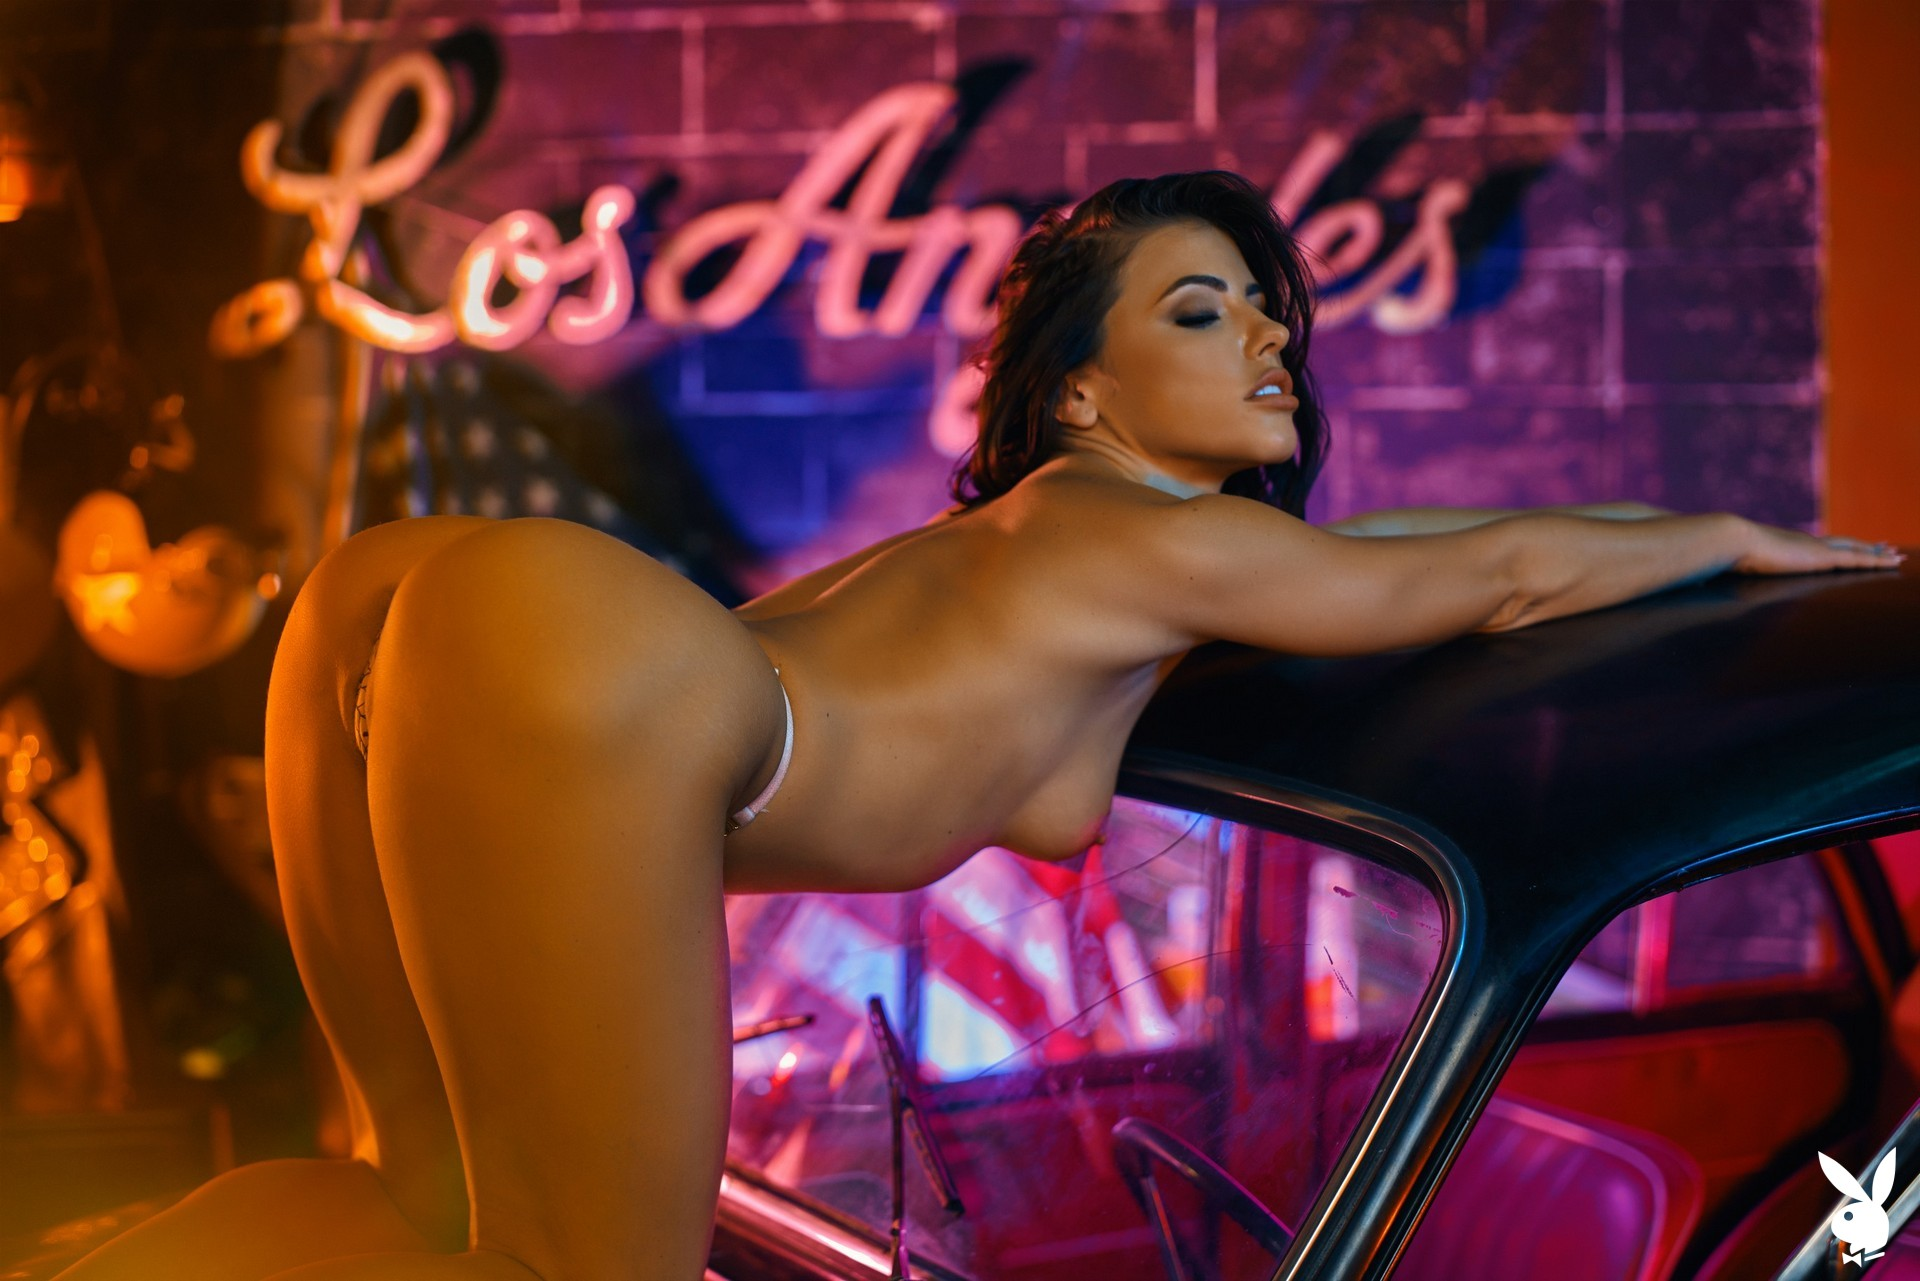 Adriana Chechik In Test Of Time Playboy Plus (21)